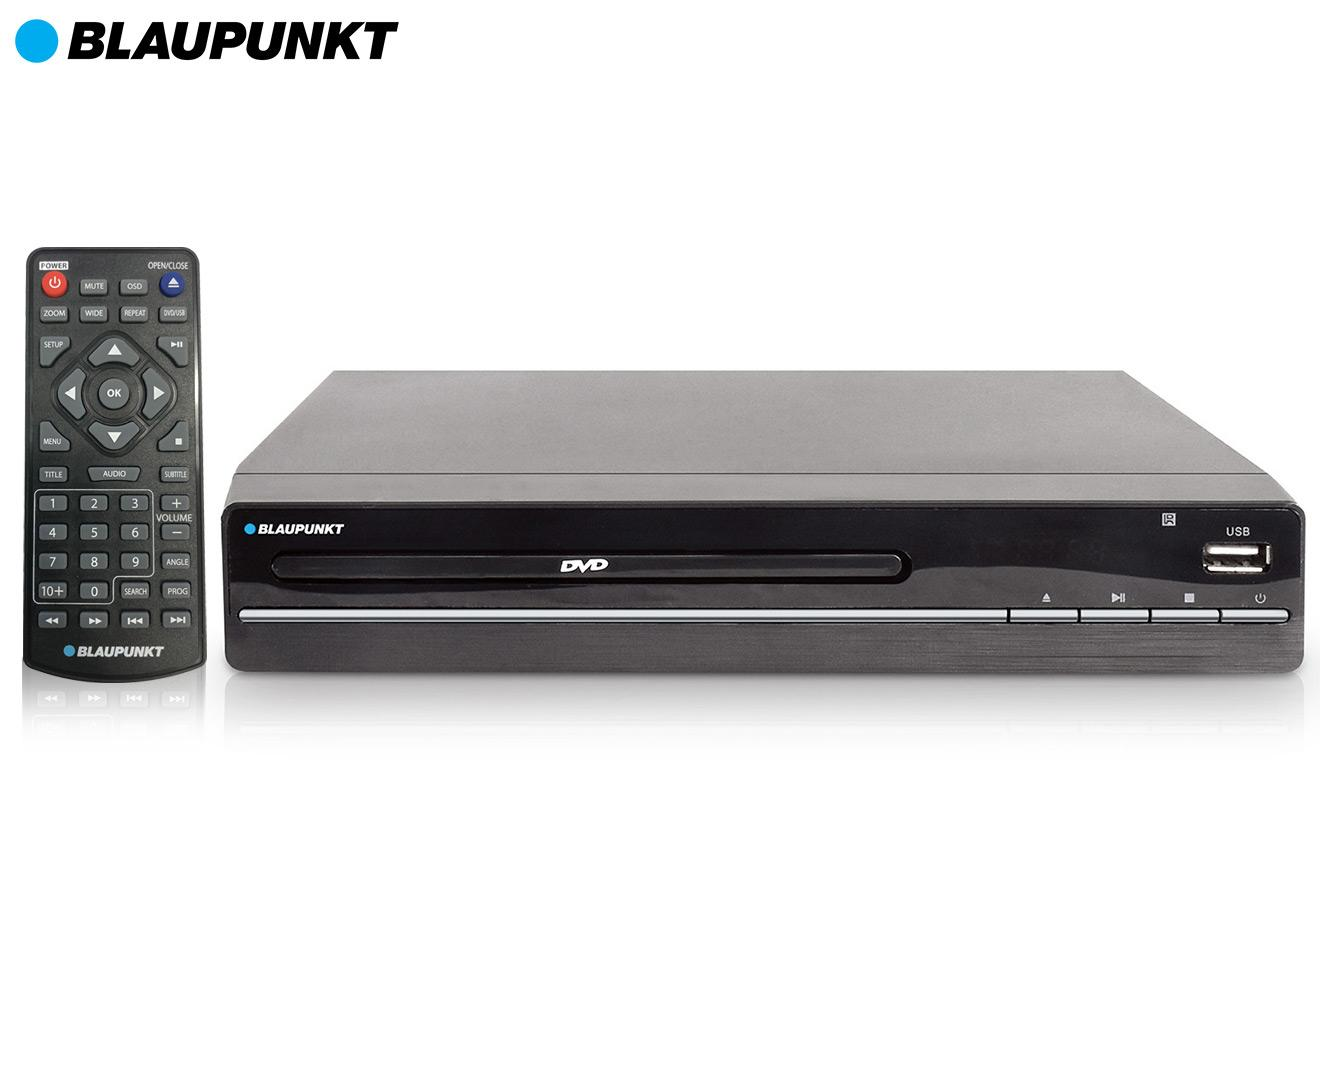 Blaupunkt 2.0CH DVD Player Black